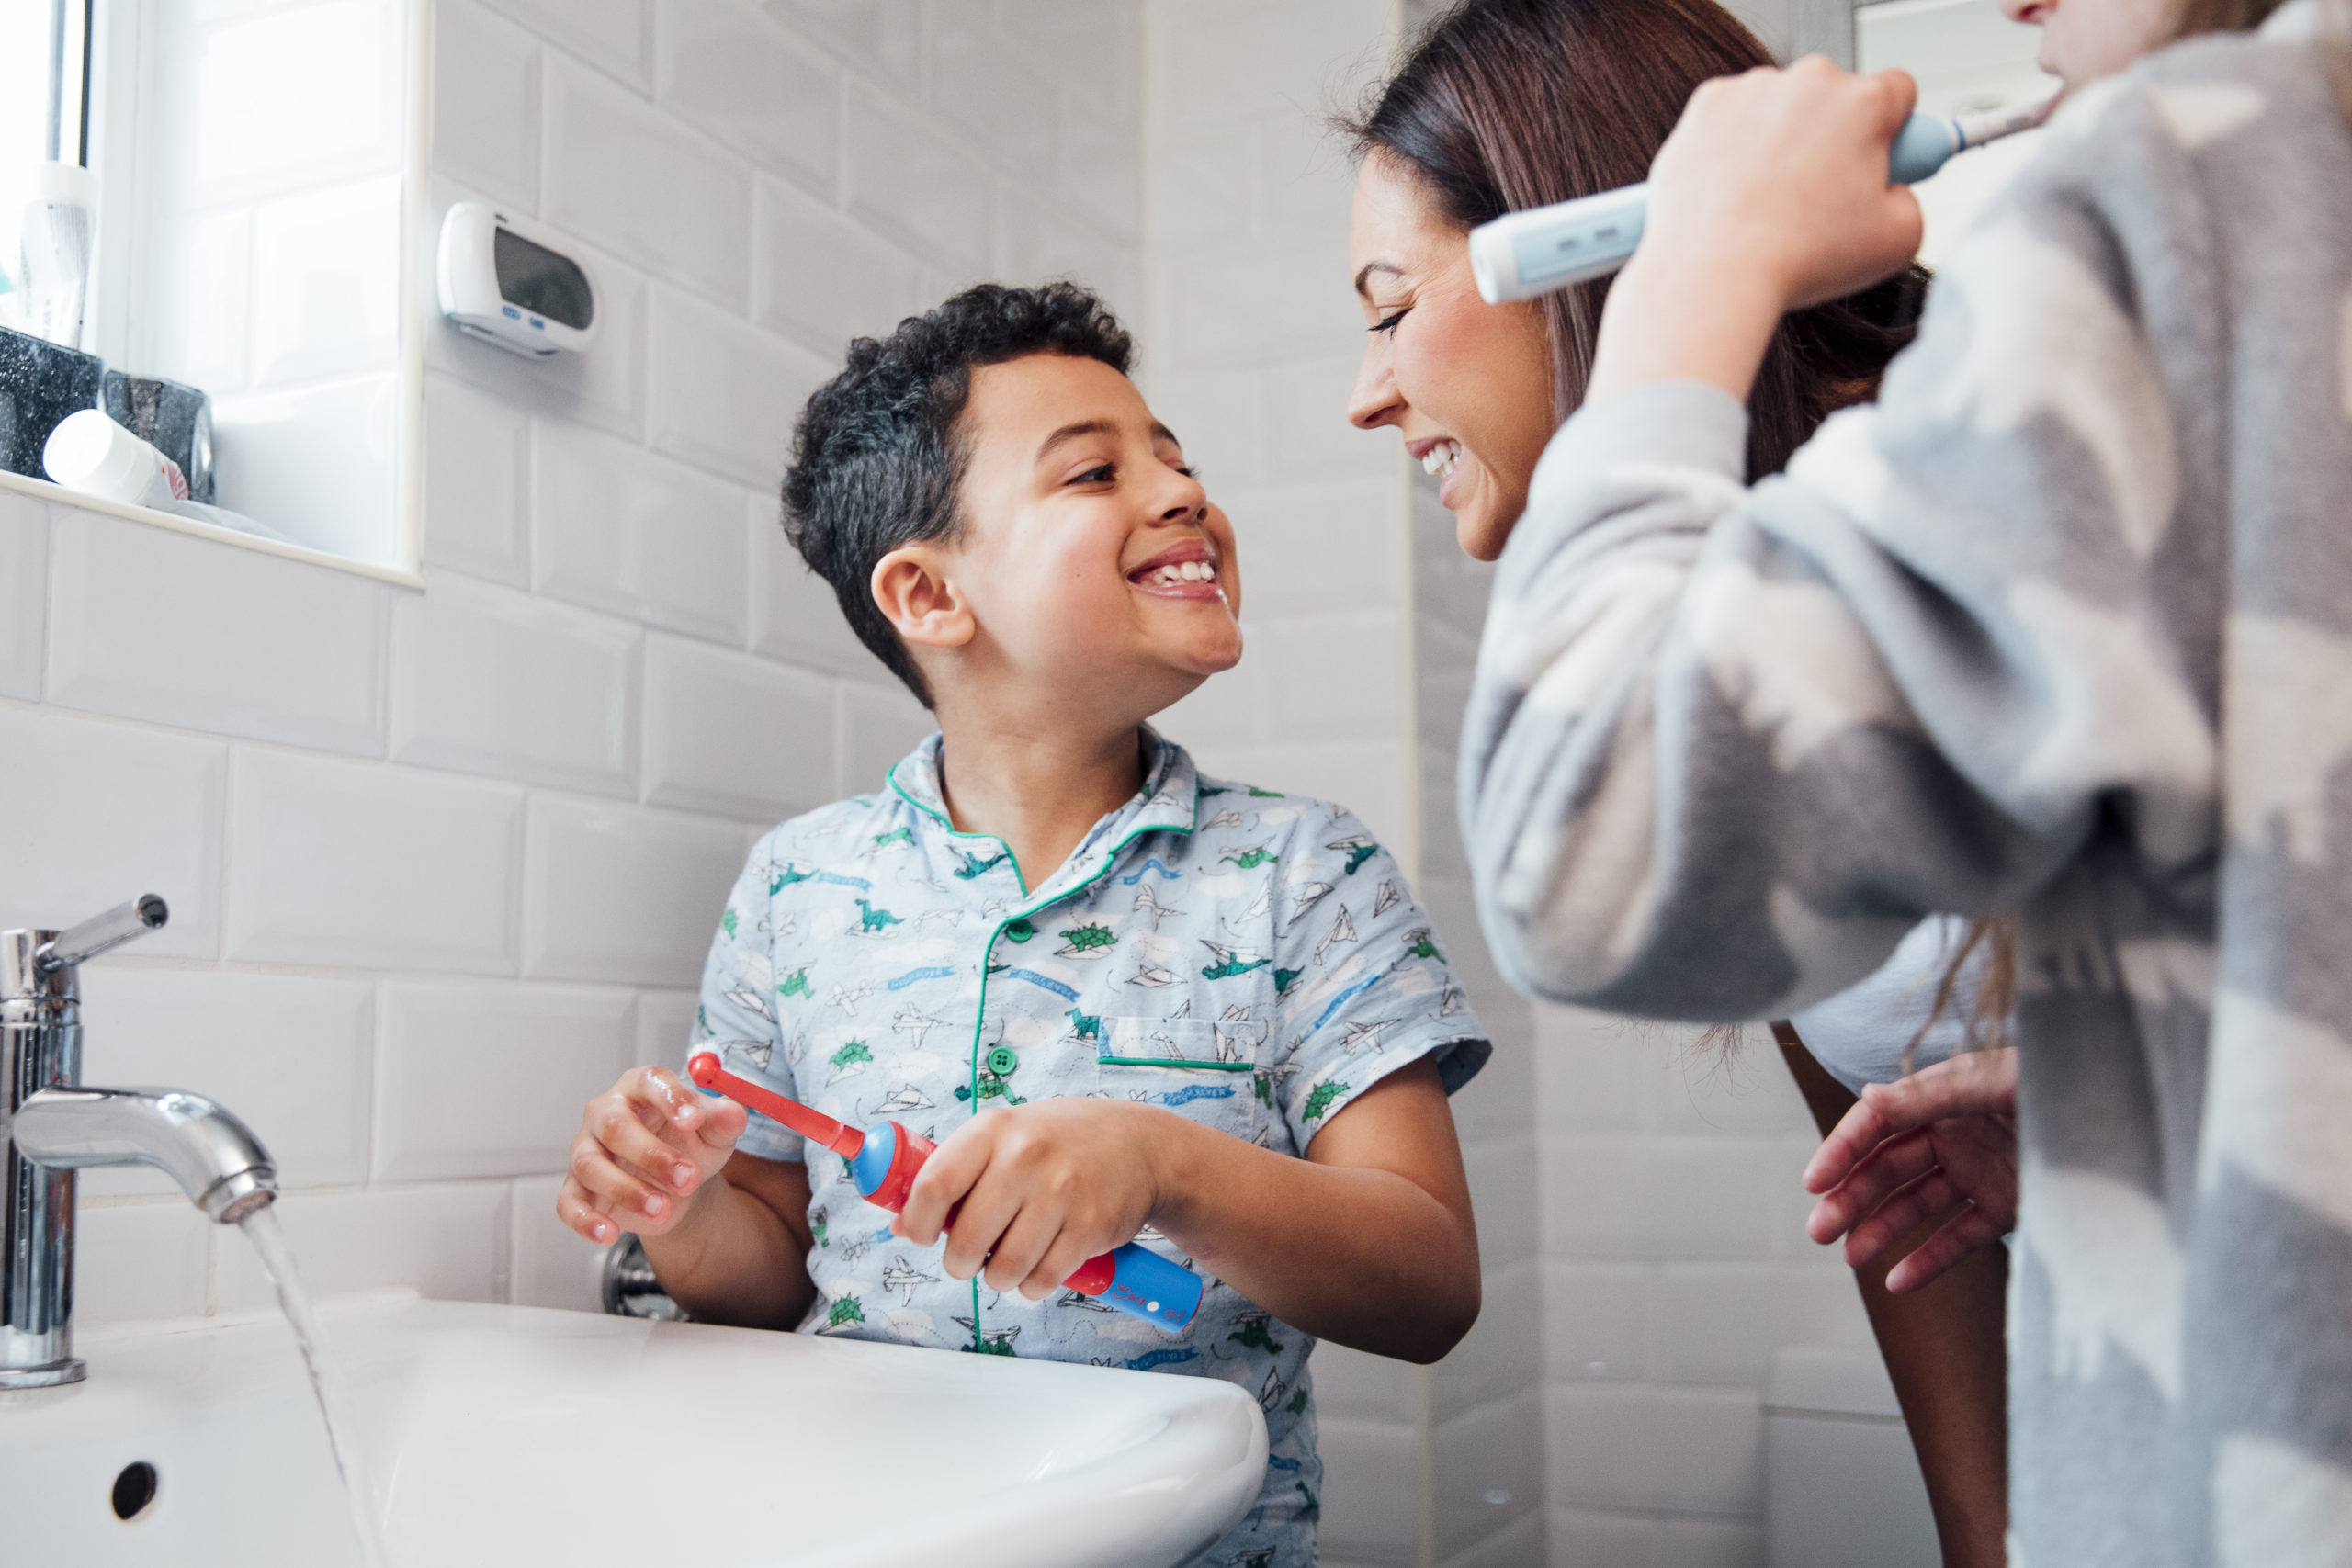 child using an electrical toothbrush